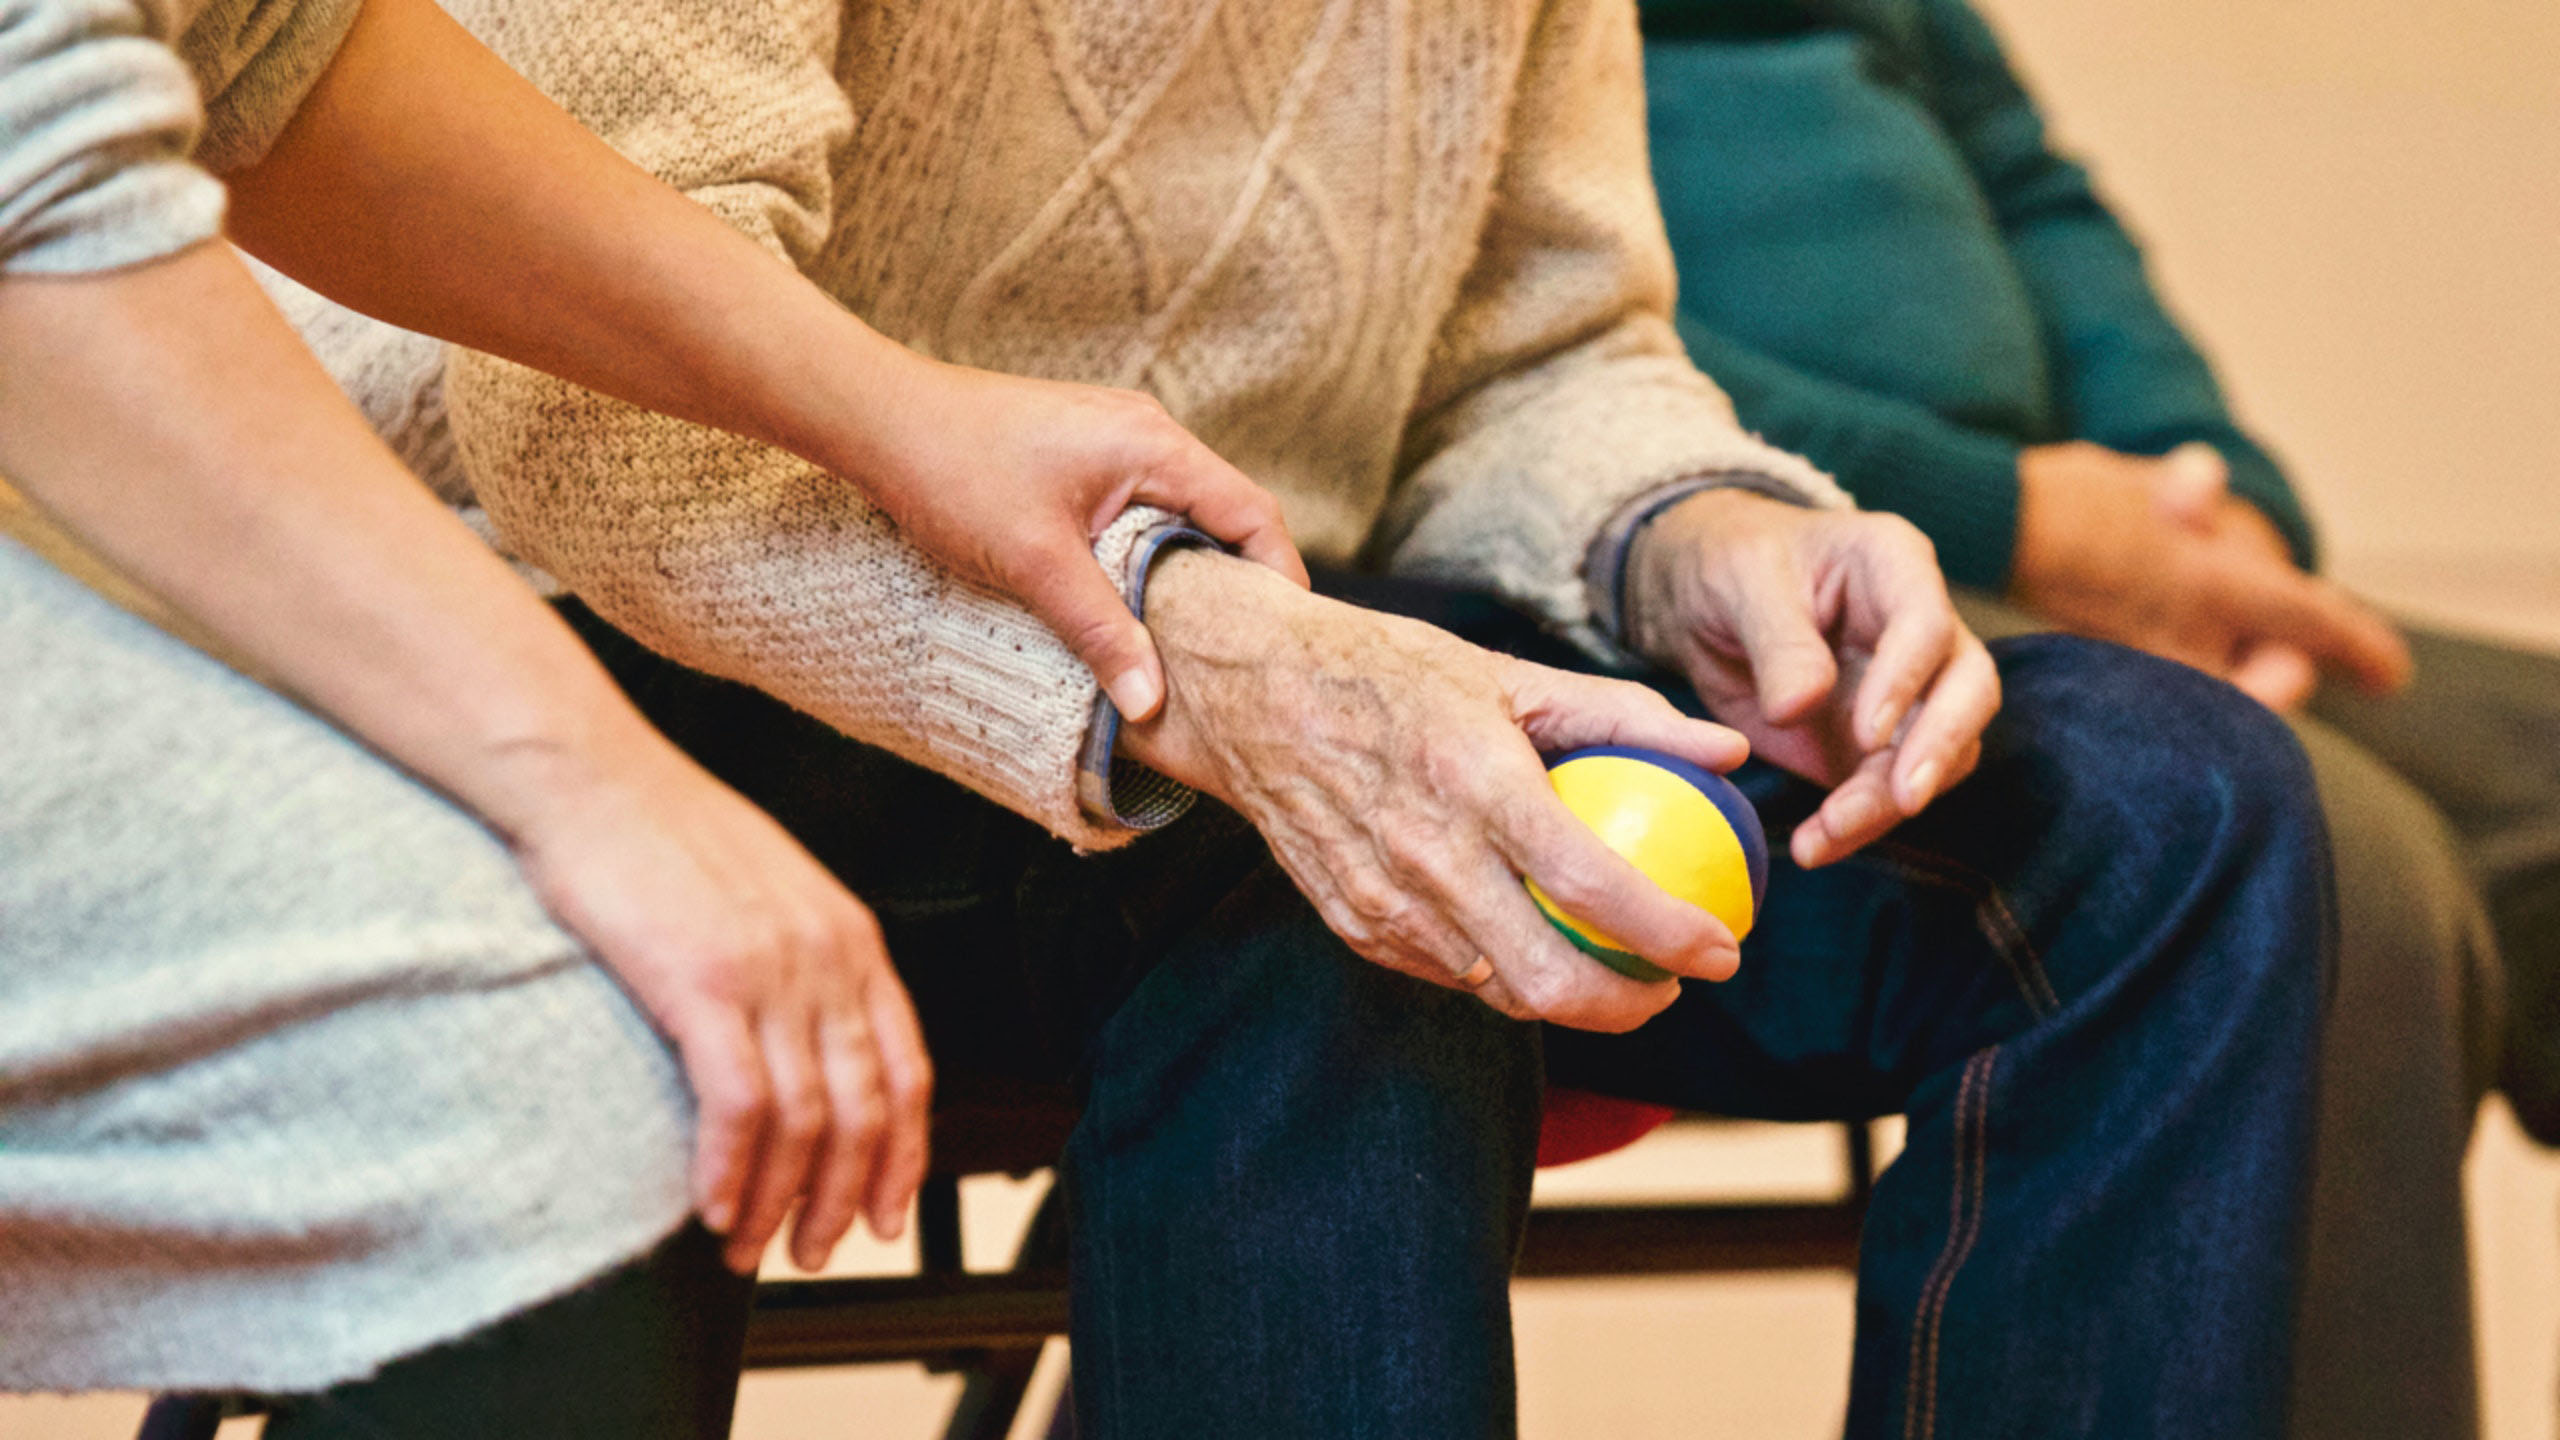 An elderly man holds a stressball.